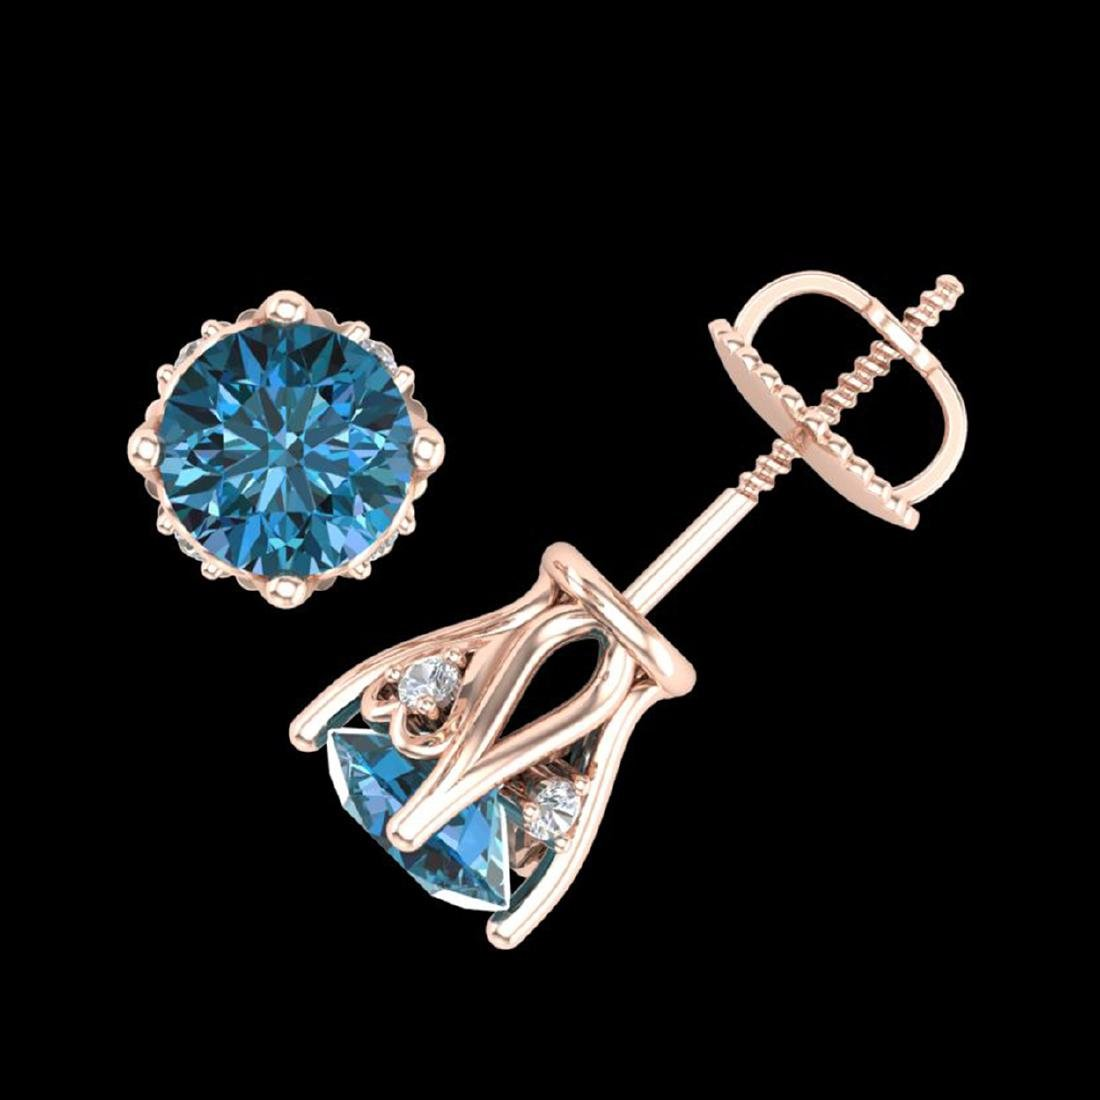 1.26 CTW Fancy Intense Blue Diamond Stud Earrings 18K - 3